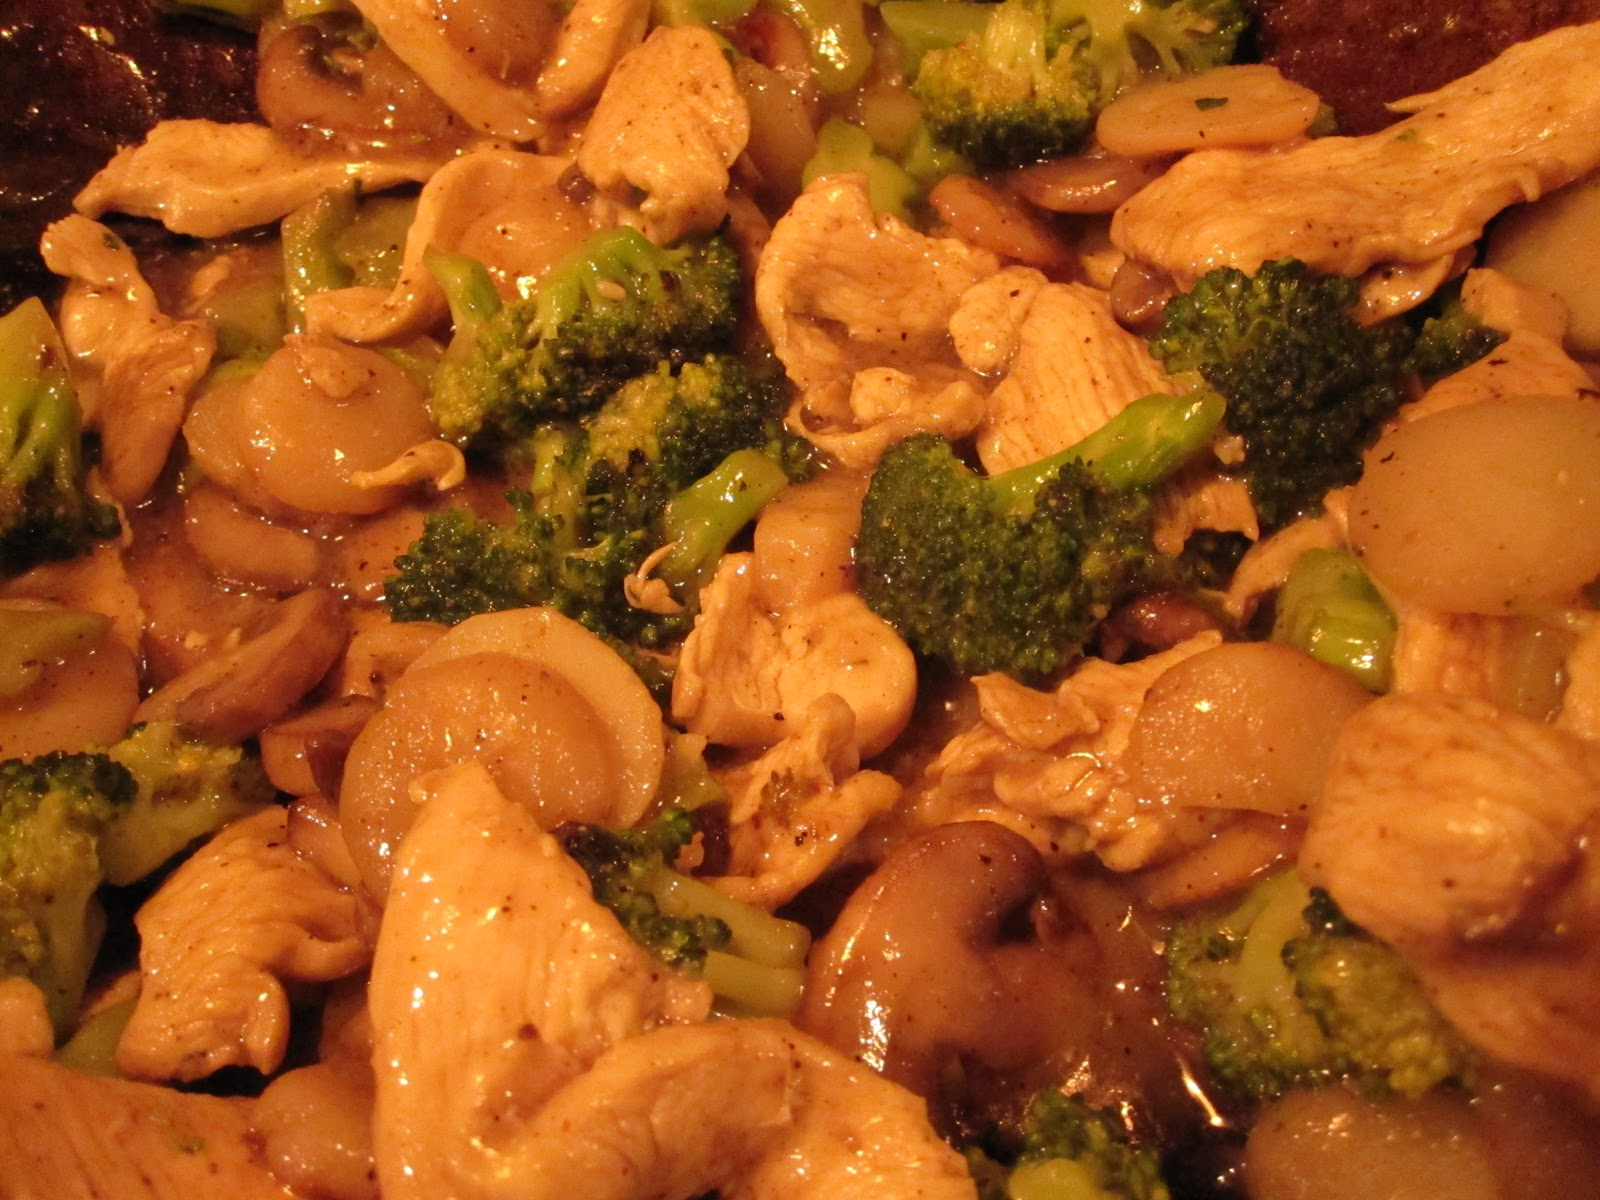 Whippet - Up!: Moo Goo Gai Pan